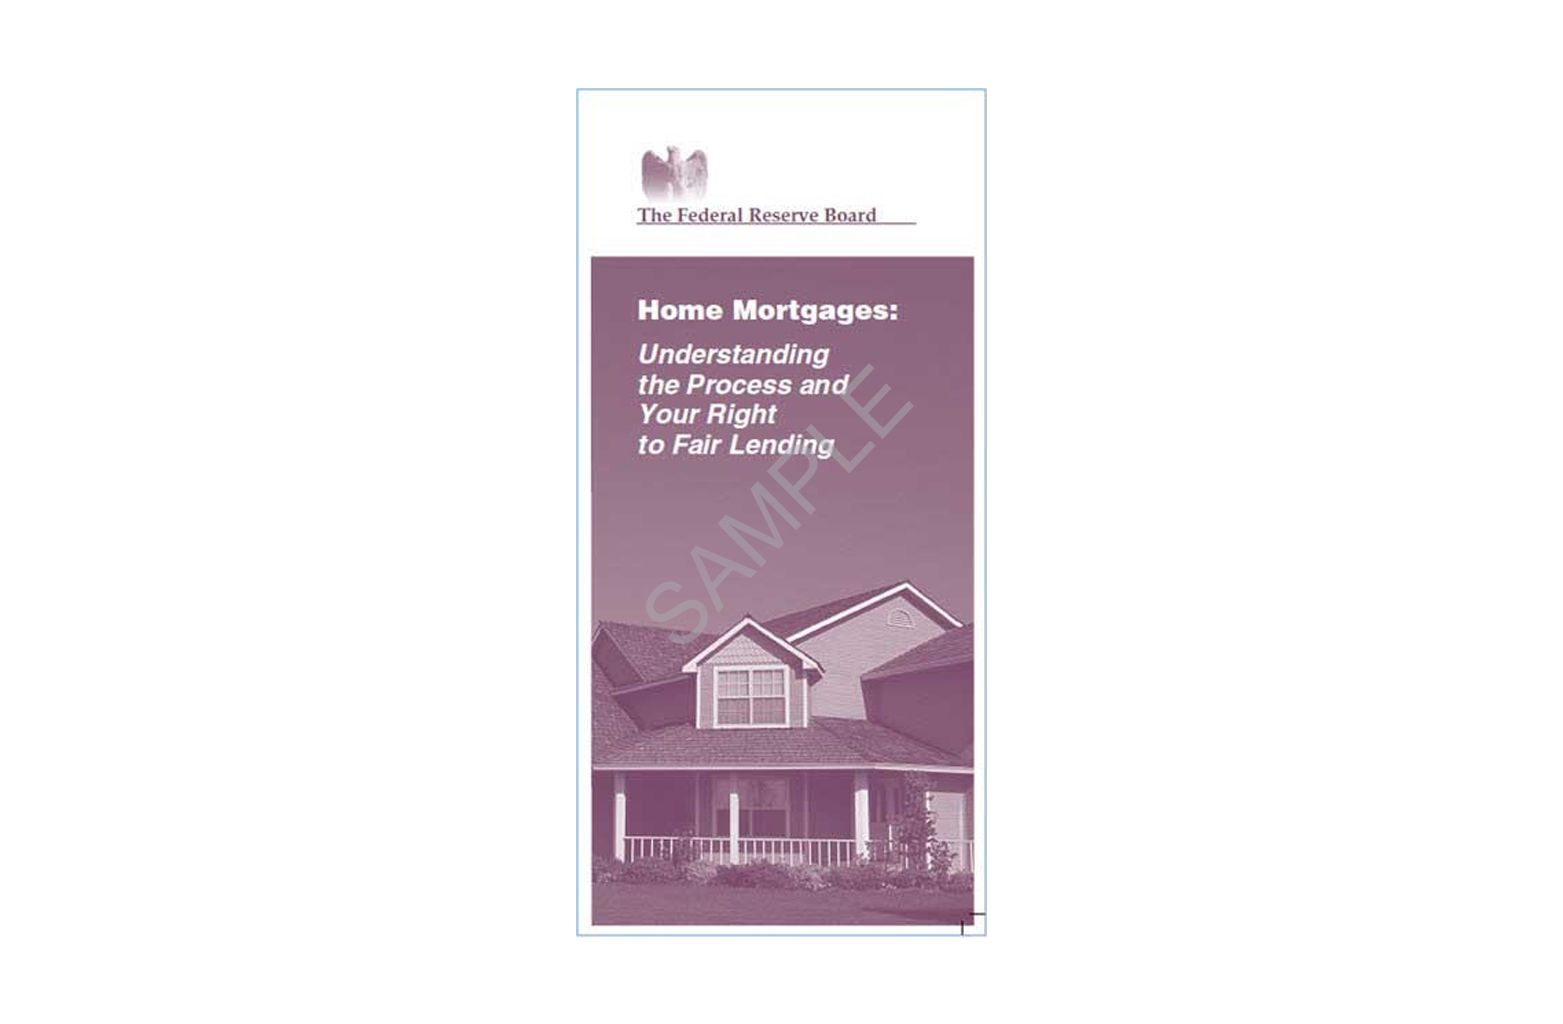 Home Mortgage Understanding the Process